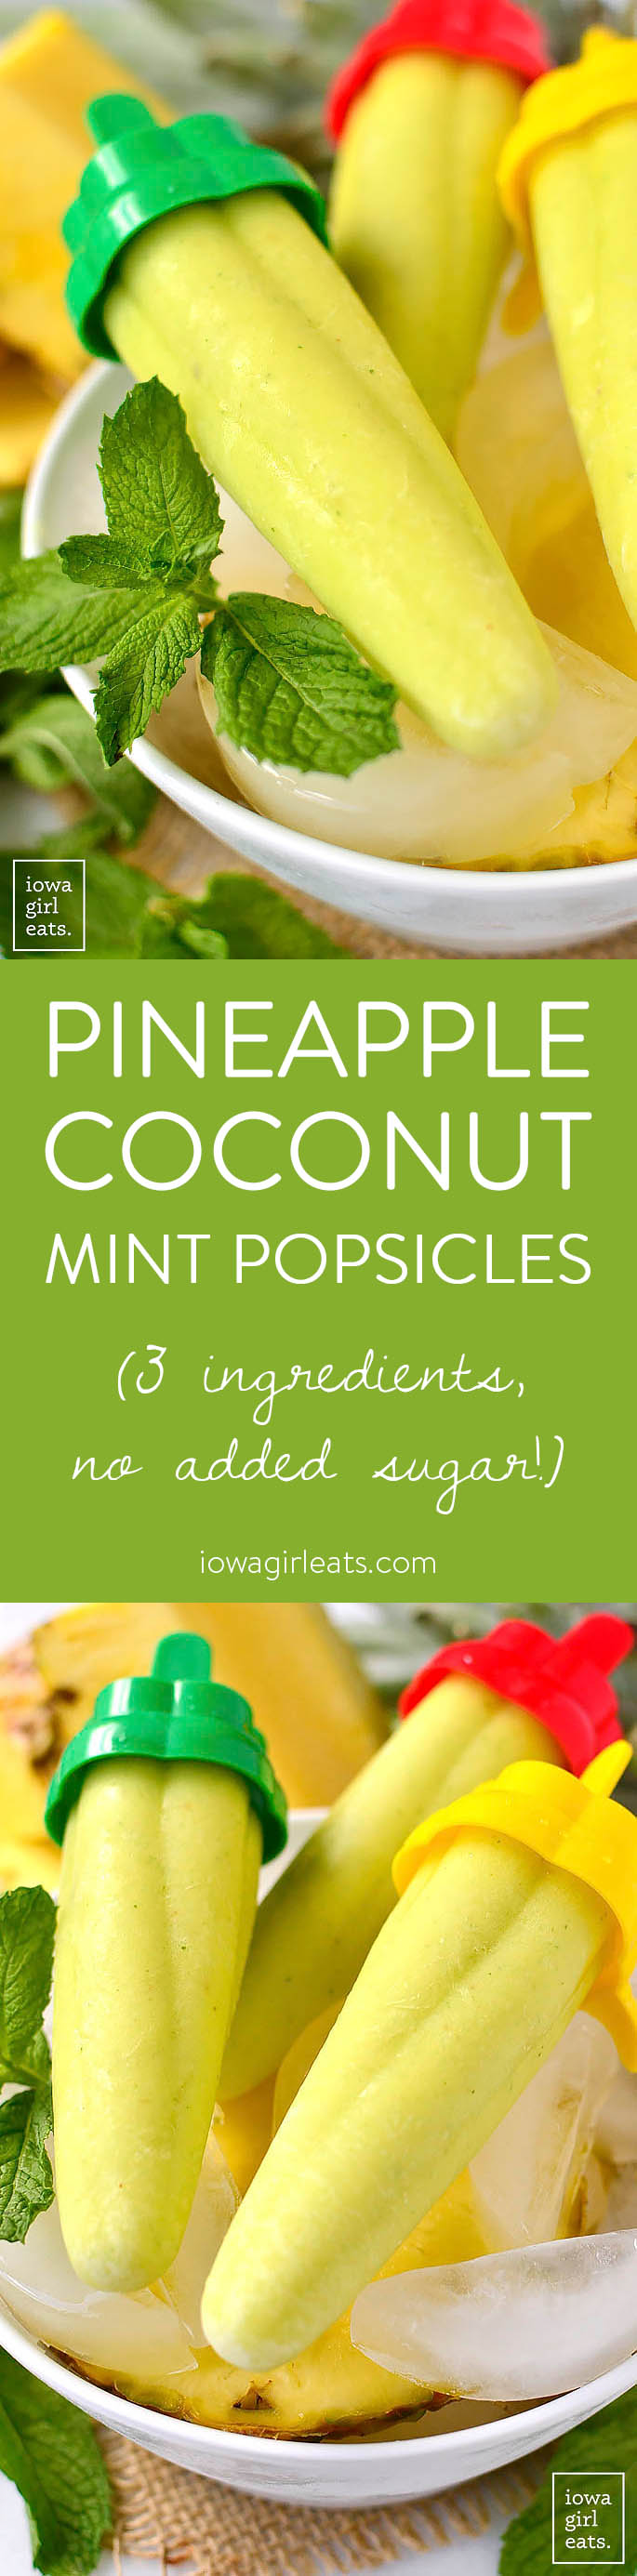 Pineapple Coconut Mint Popsicles are a 3 ingredient, unsweetened, healthy popsicle recipe for the hottest of summer days!   iowagirleats.com